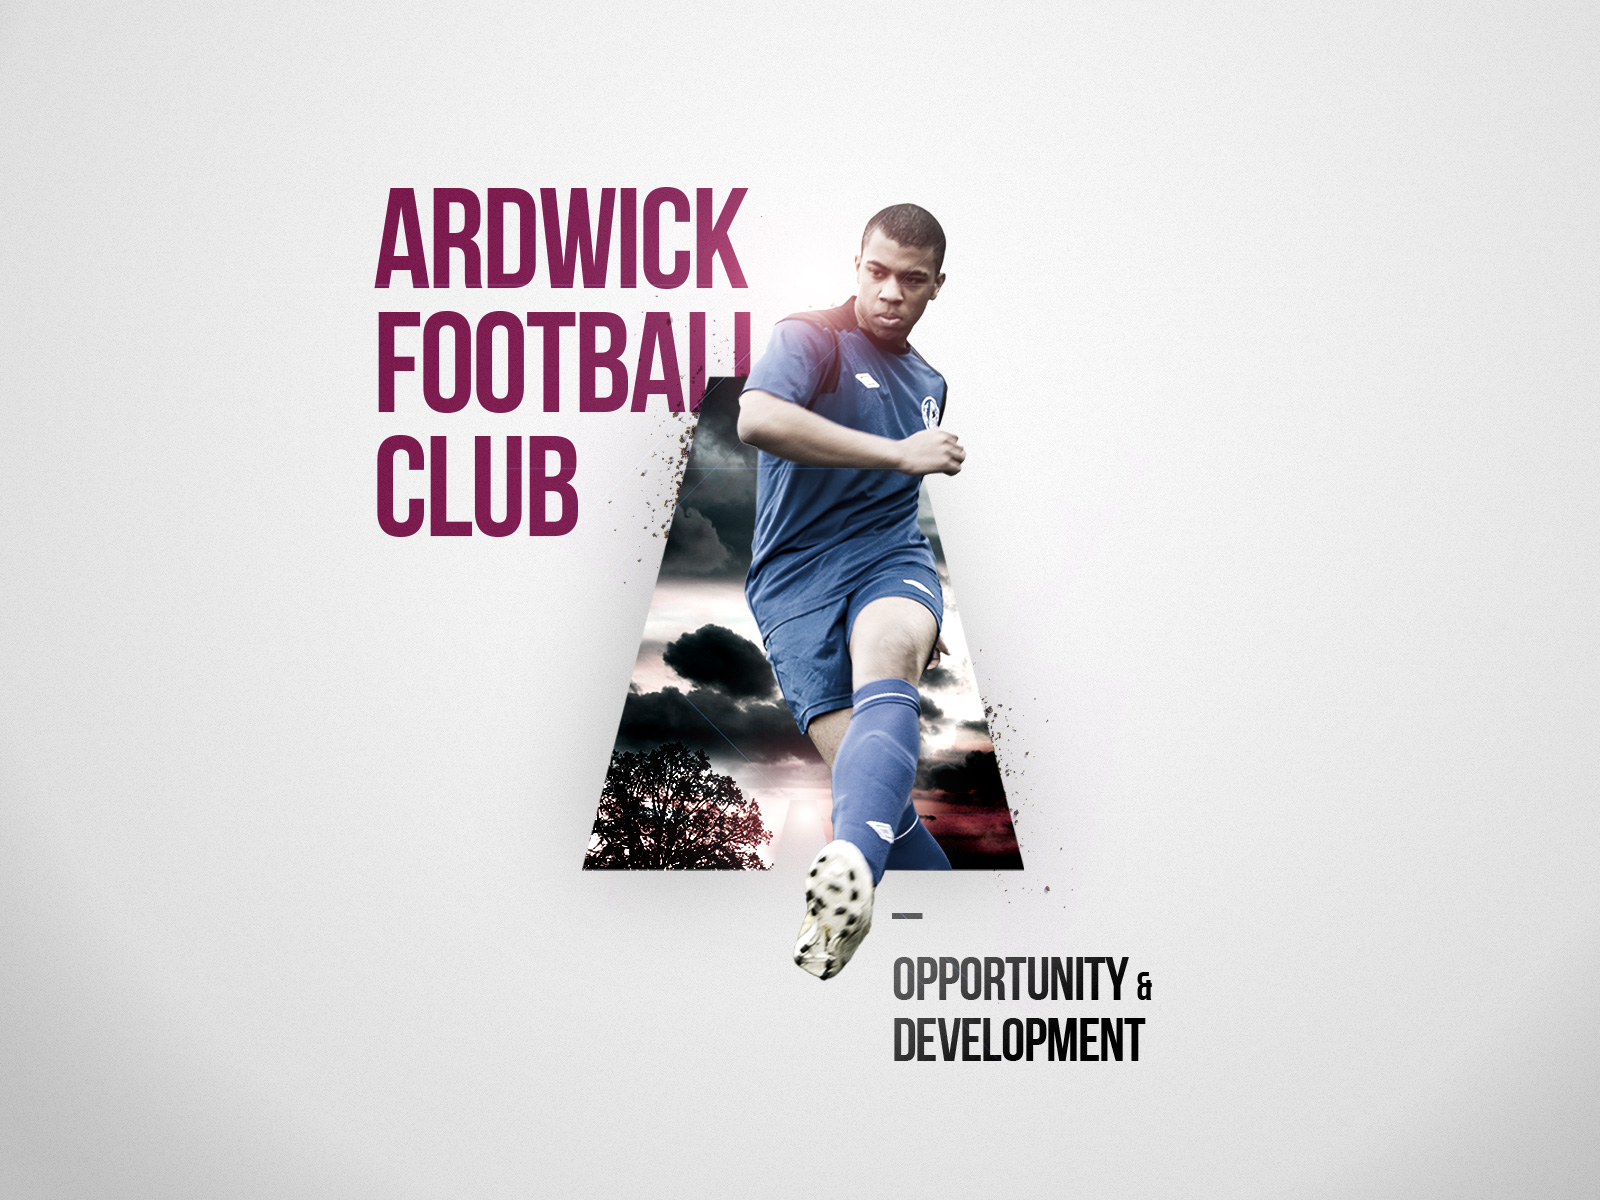 Football club campaign artwork